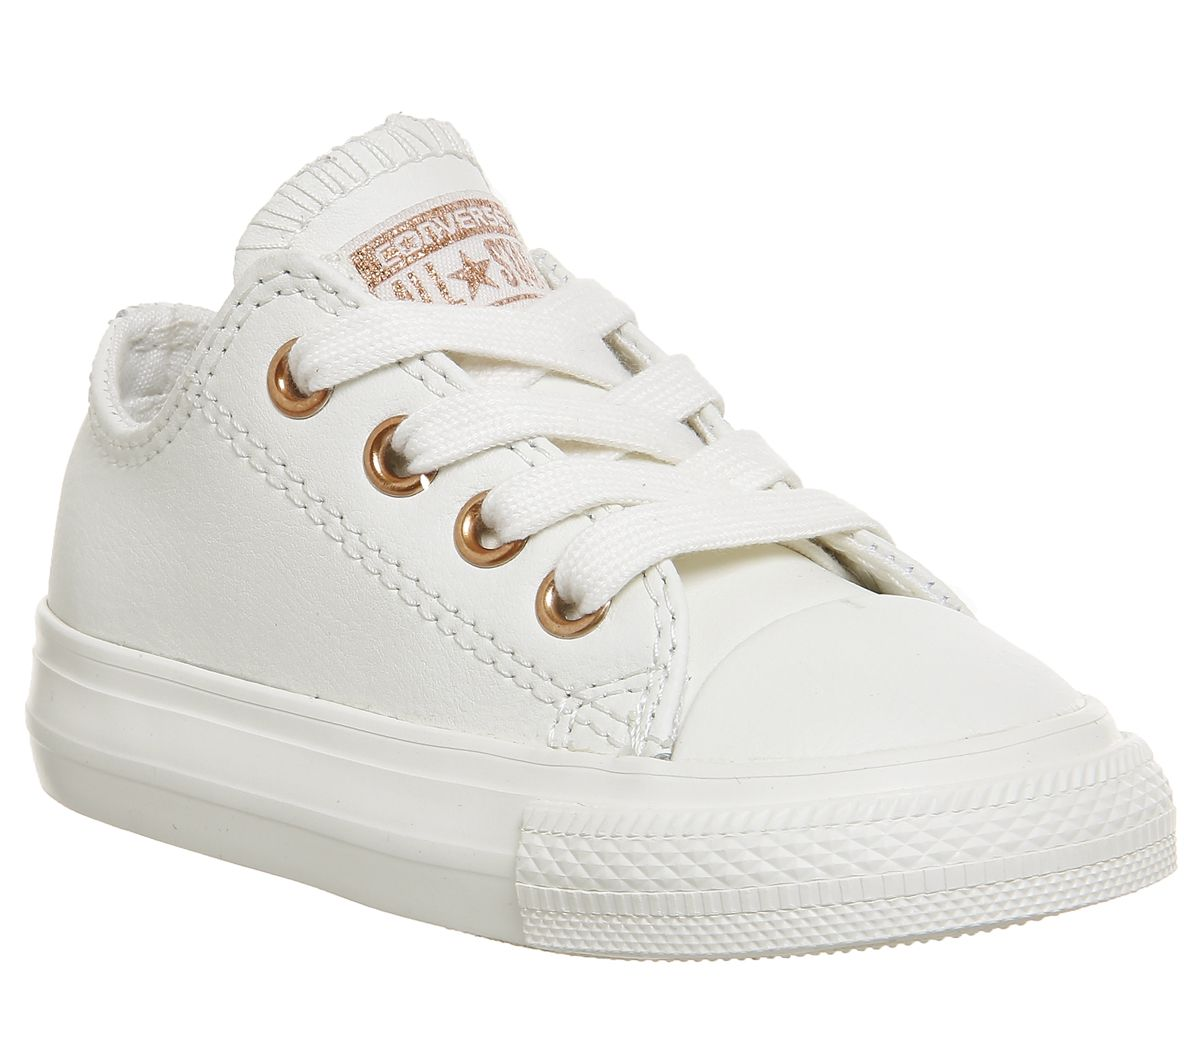 85526df3f1a7 Converse All Star Ox Leather Infant Egret Rose Gold Exclusive - Unisex